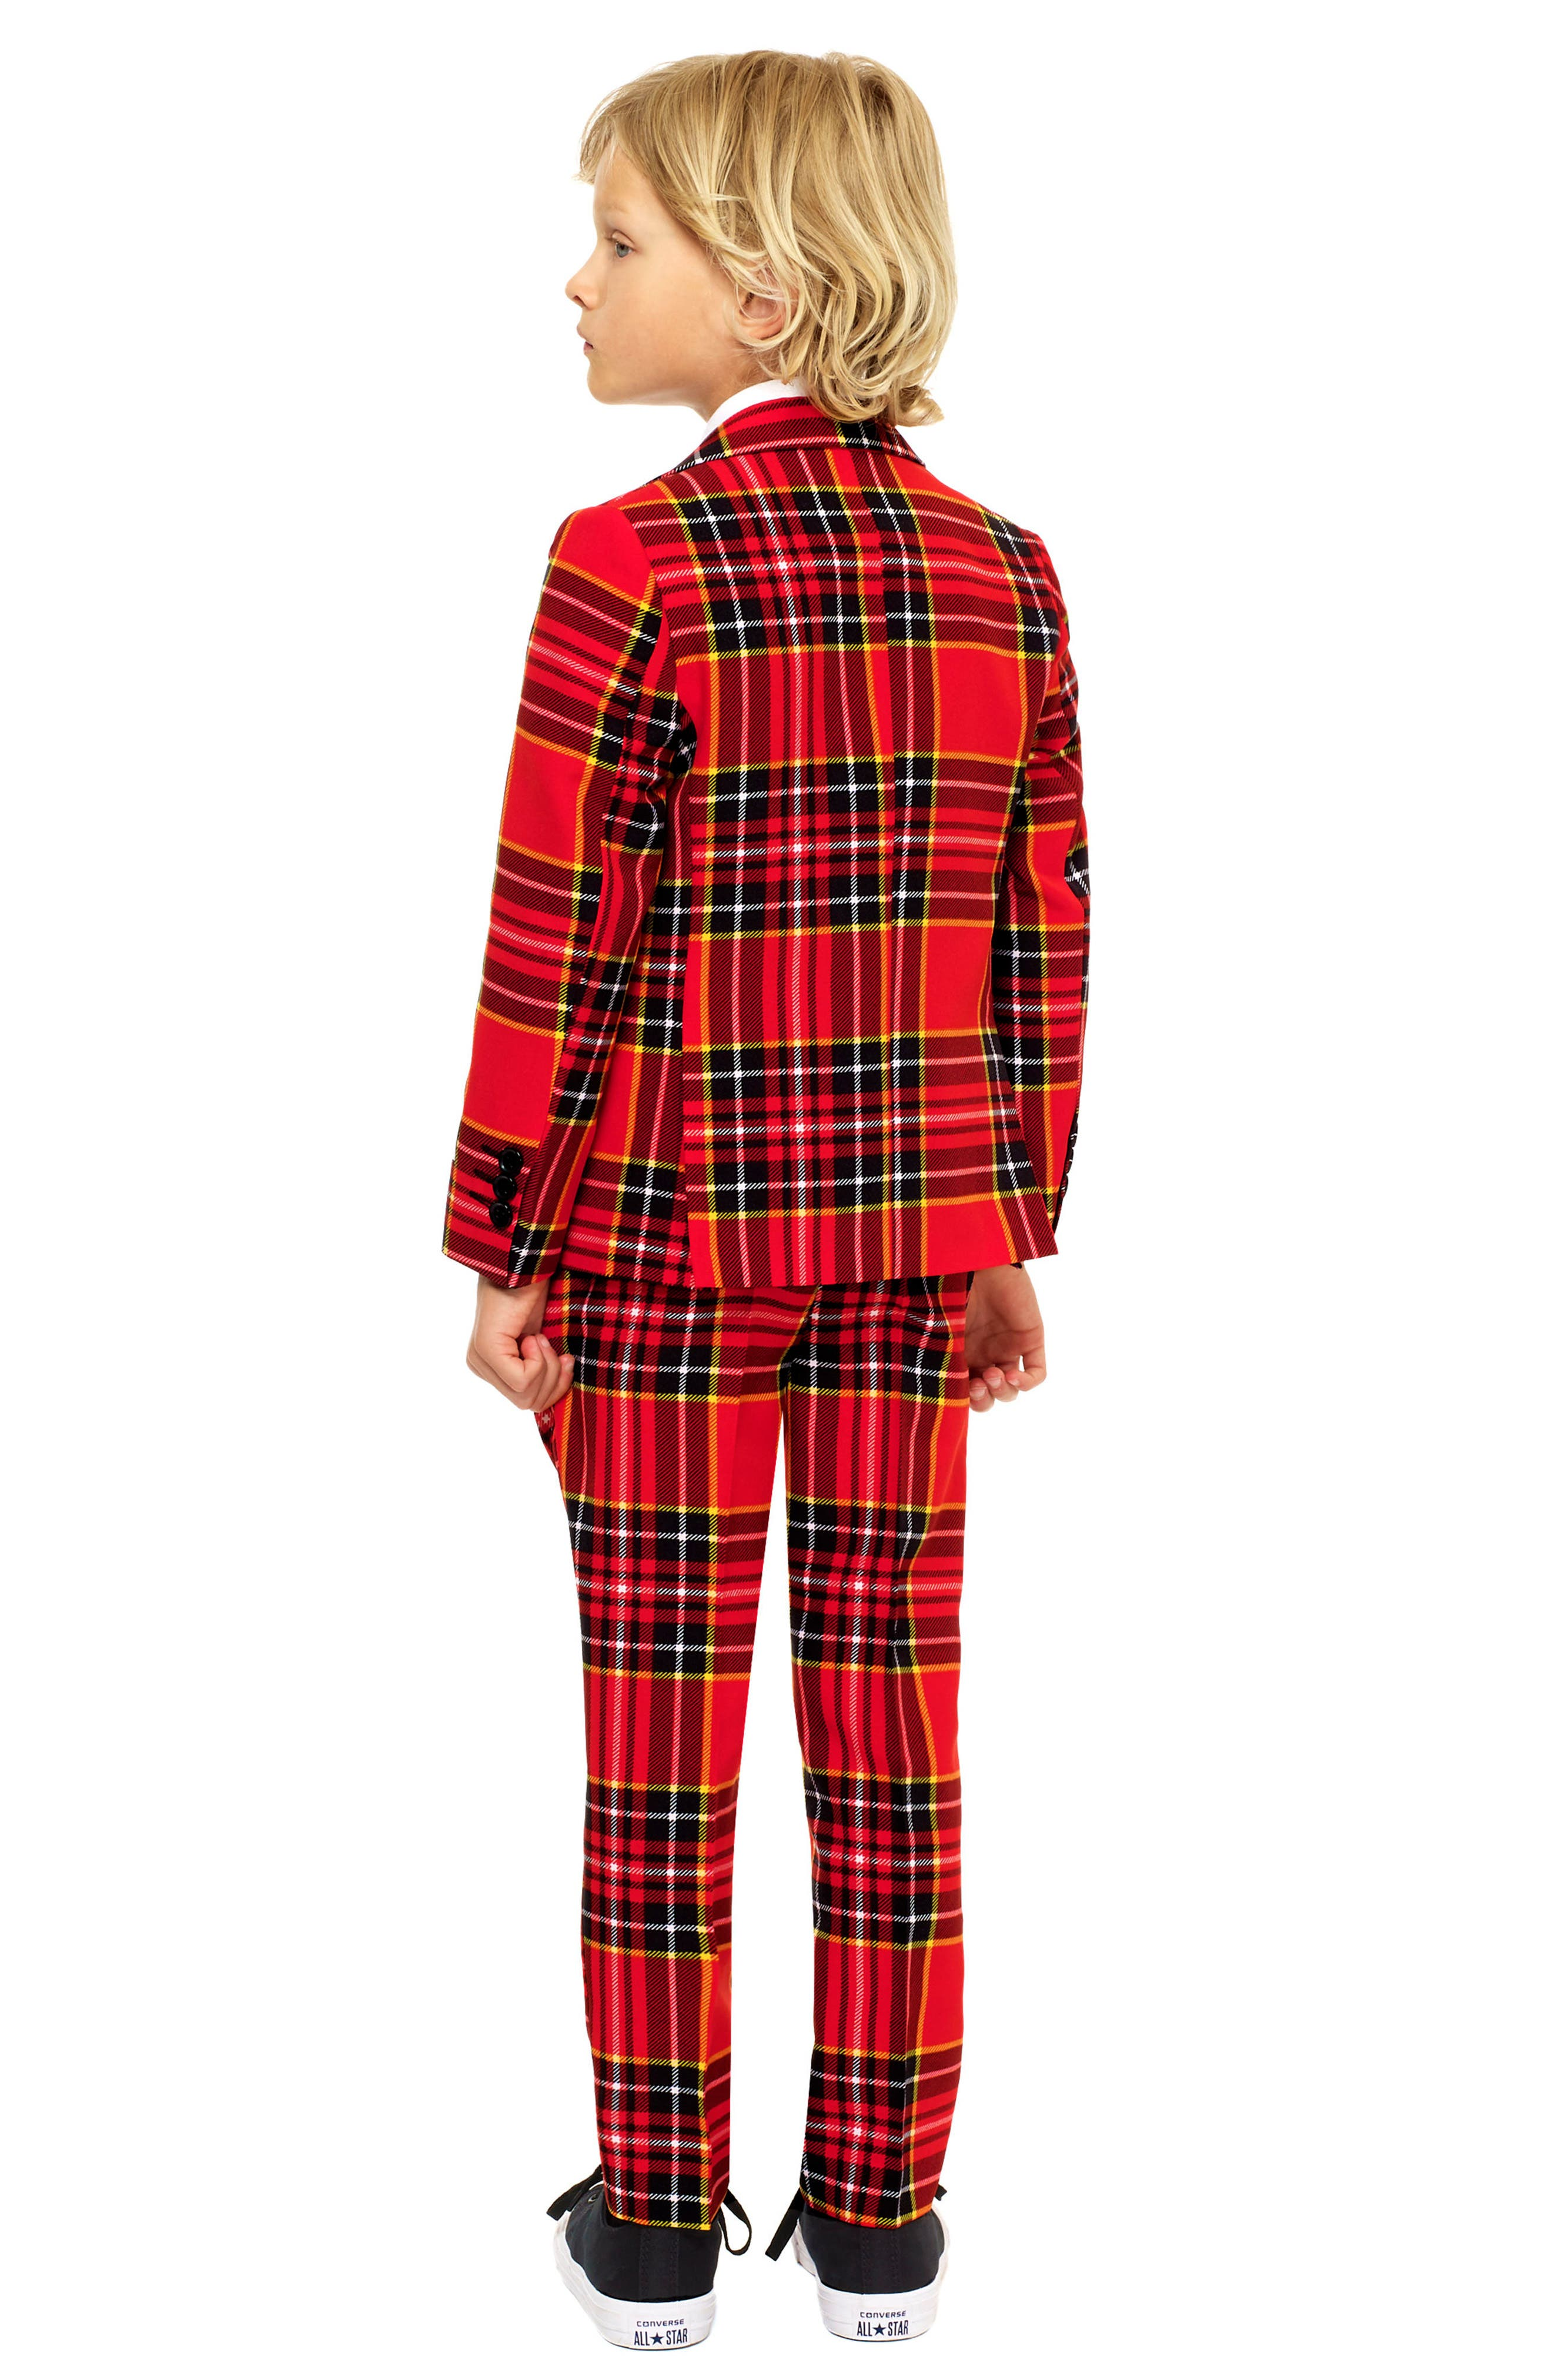 Lumberjack Two-Piece Suit with Tie,                             Alternate thumbnail 2, color,                             RED